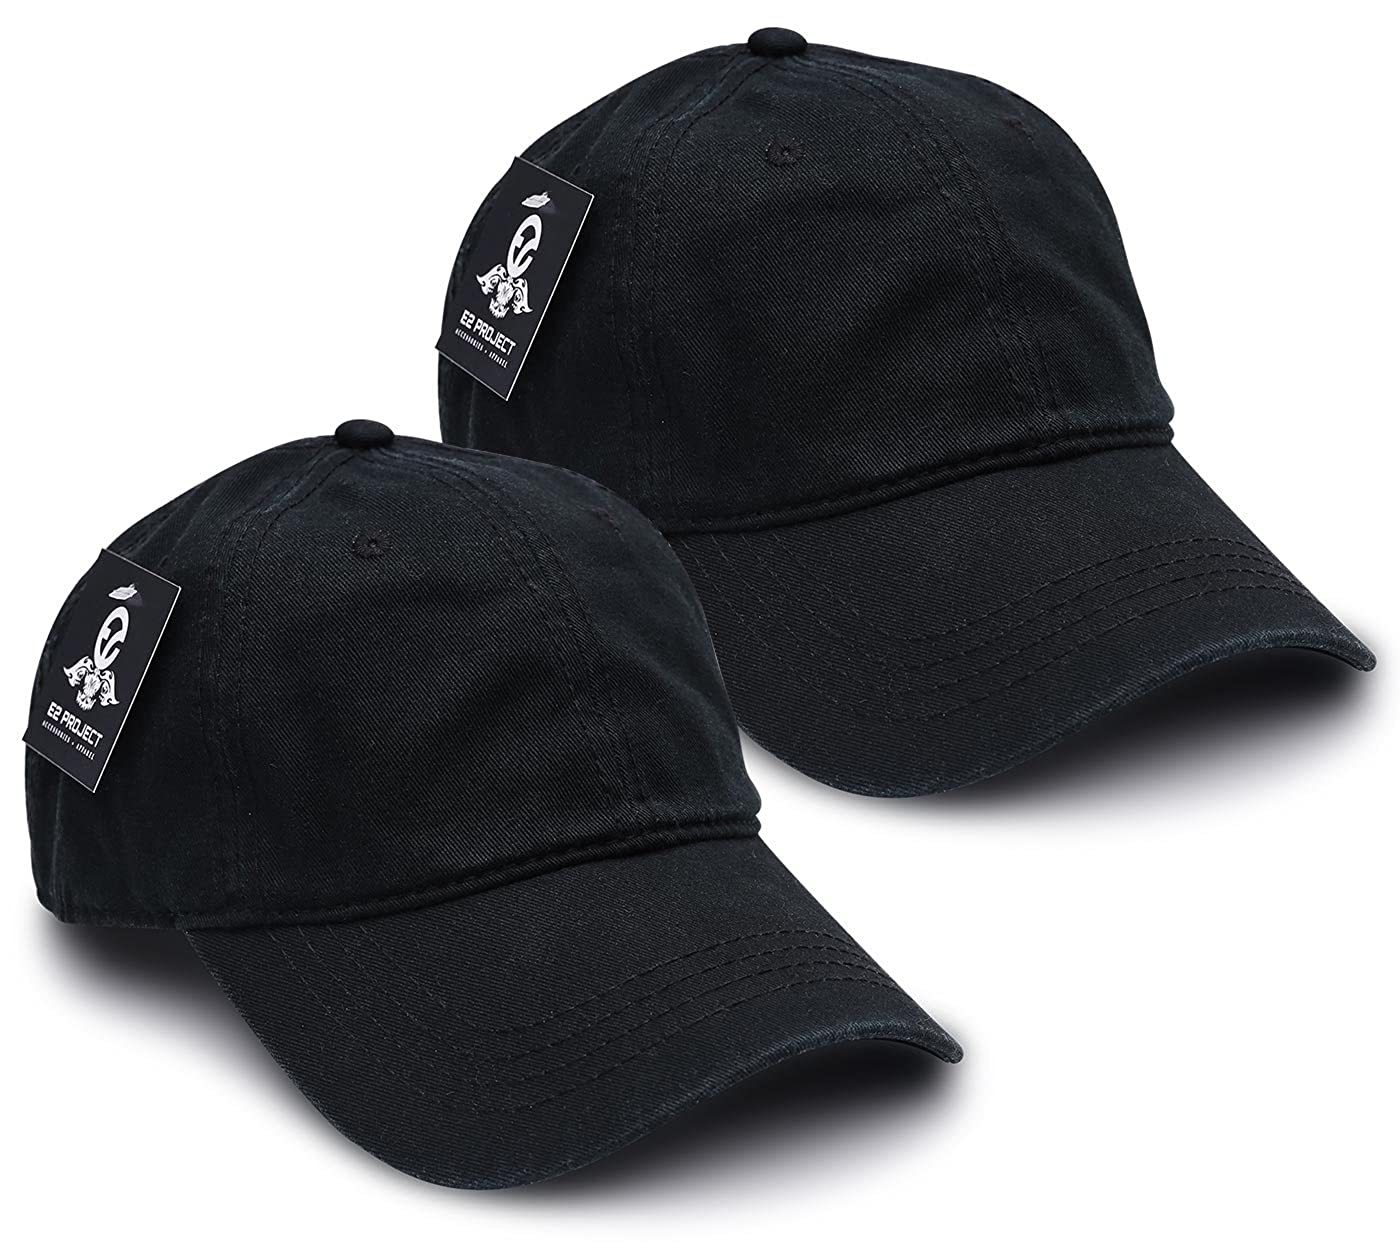 64f2f1ff E2 Project 2 Pack Low Crown Unconstructed Basic Washed Twill Baseball Cap  for Men or Women (Black) at Amazon Men's Clothing store: